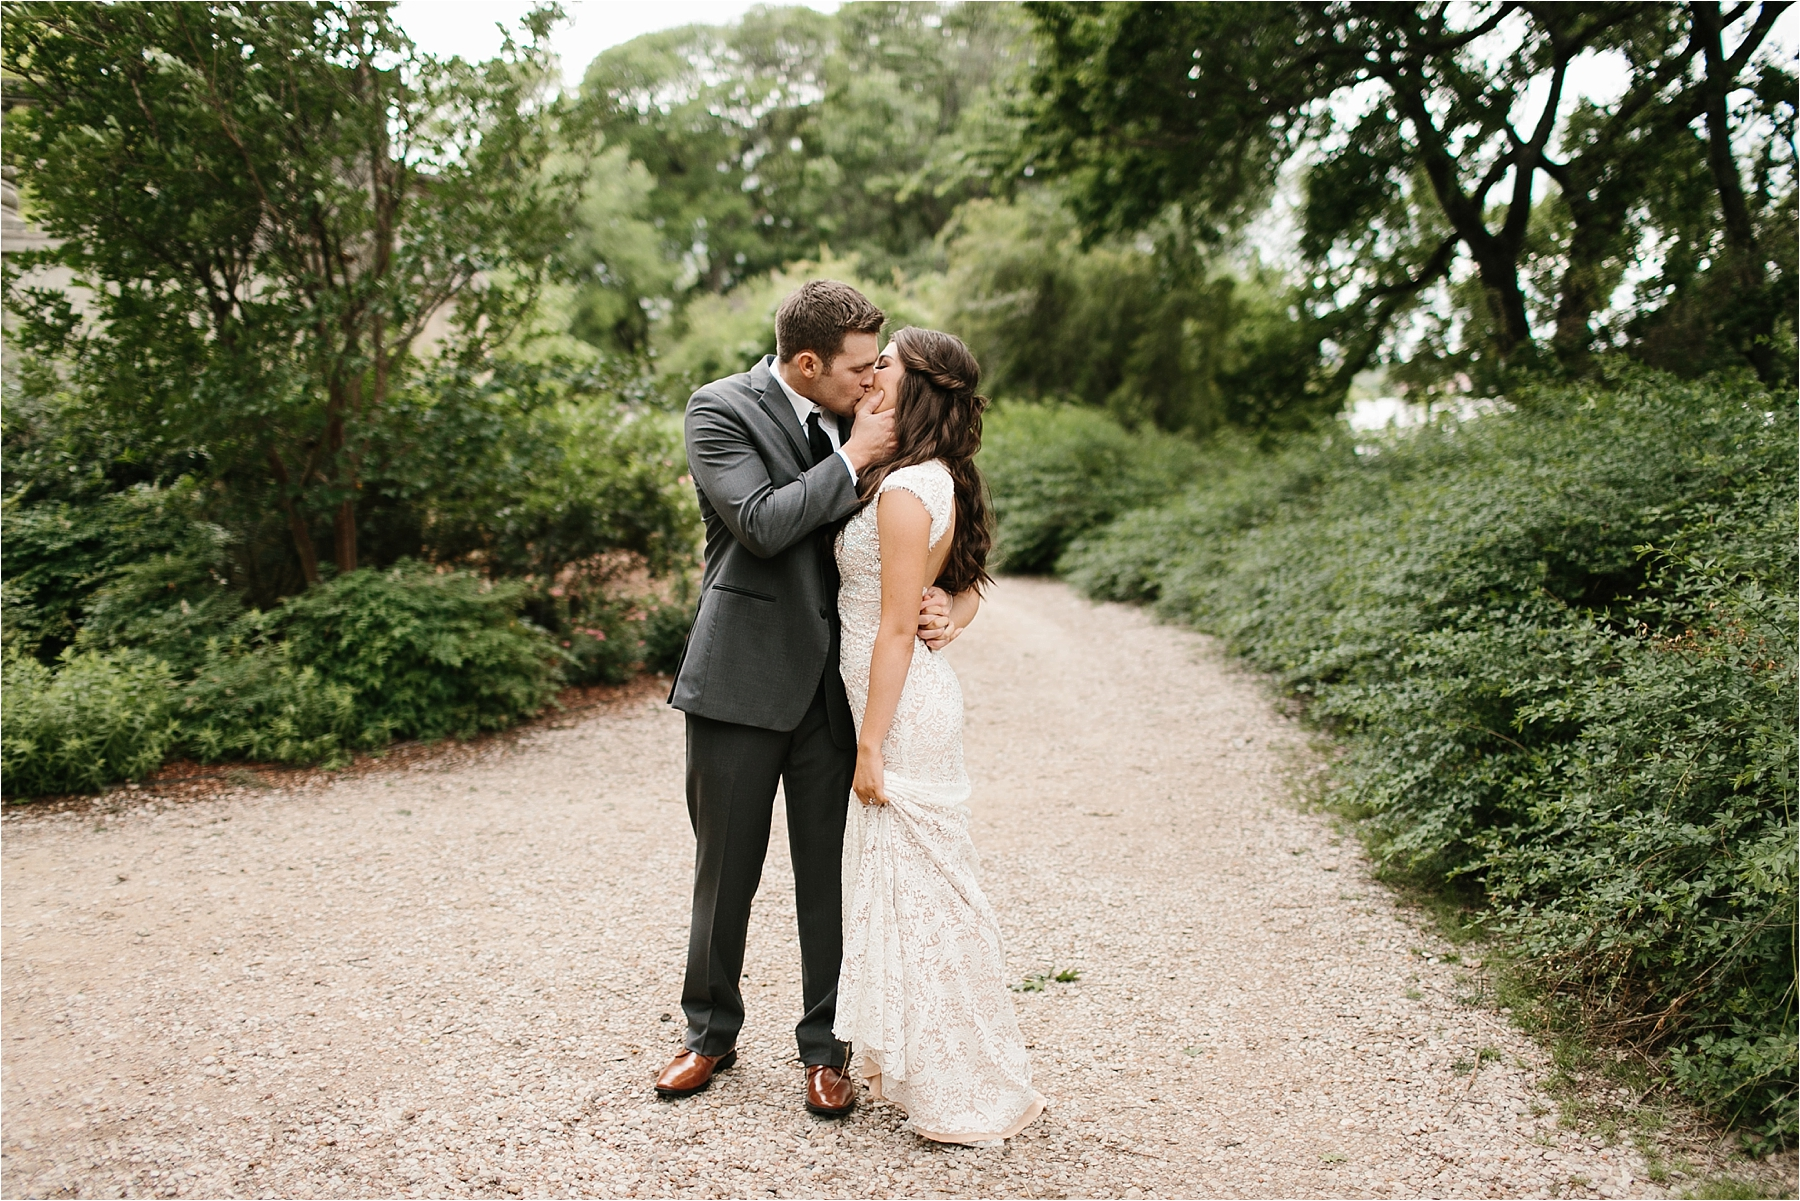 Devyn + Caden __ a Dallas Arboretum Garden Style Wedding by North Texas Wedding Photographer Rachel Meagan Photography __ 036